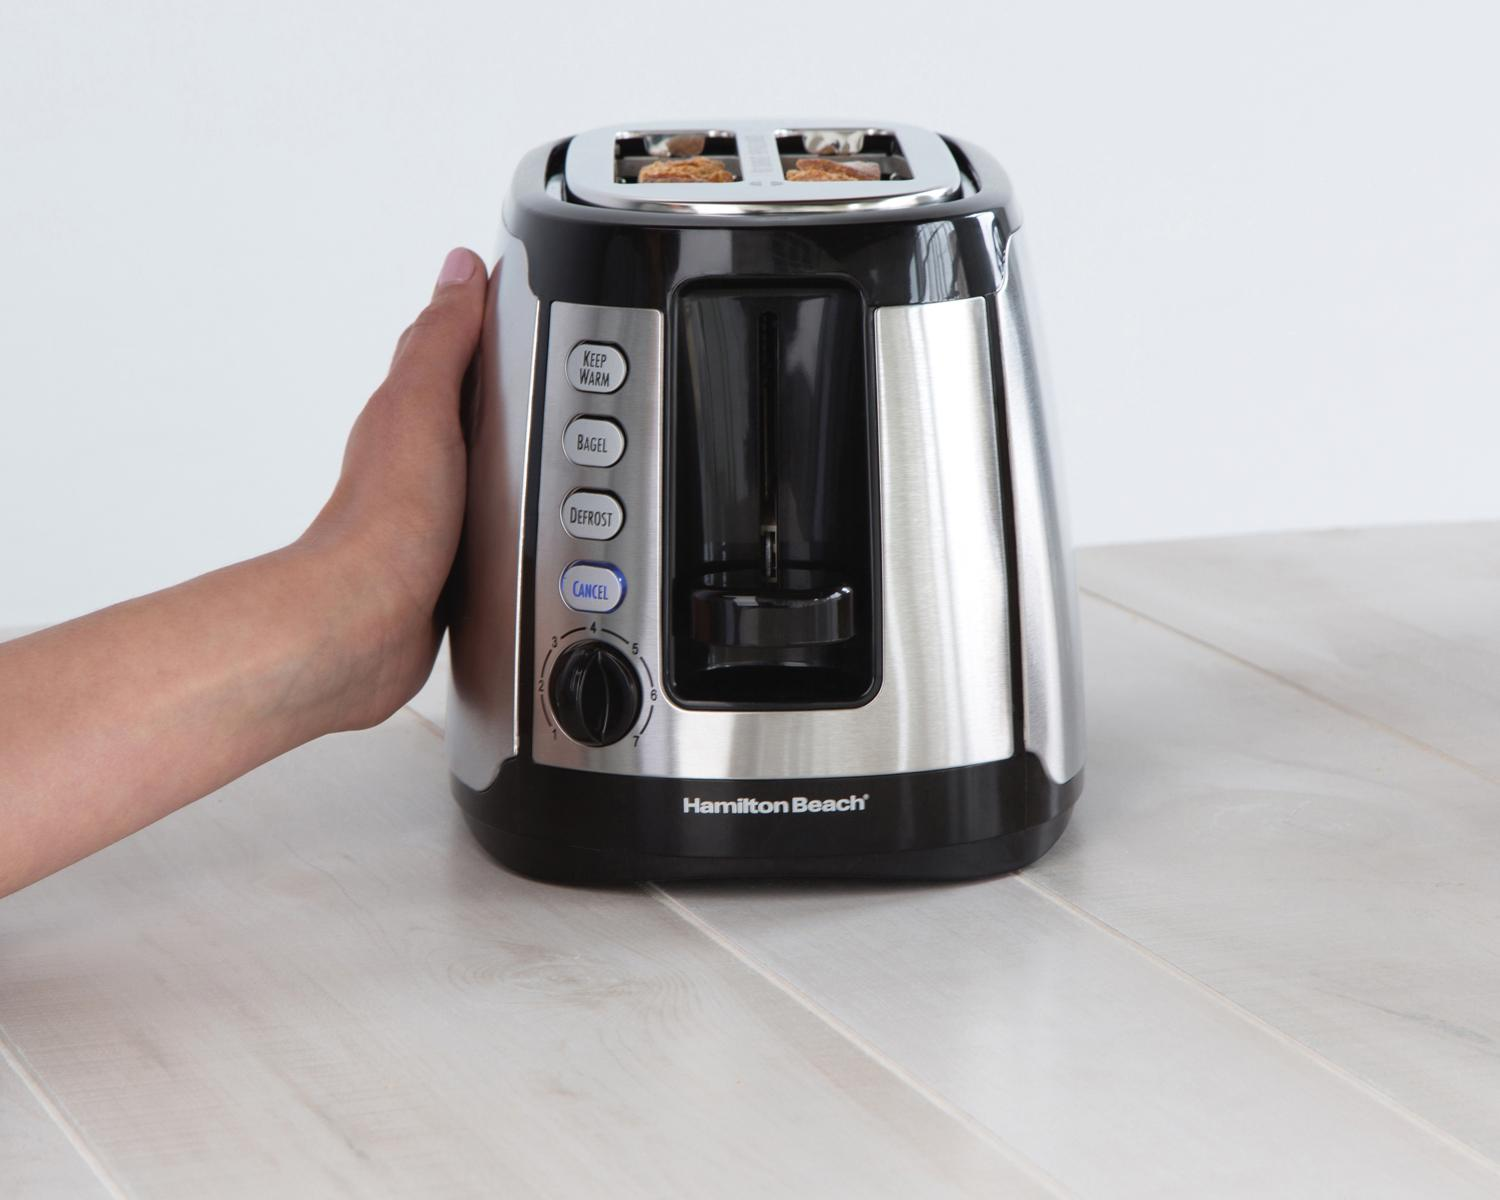 Hamilton Beach 2 Slice Toaster with Warm Mode: Amazon.ca: Home ...